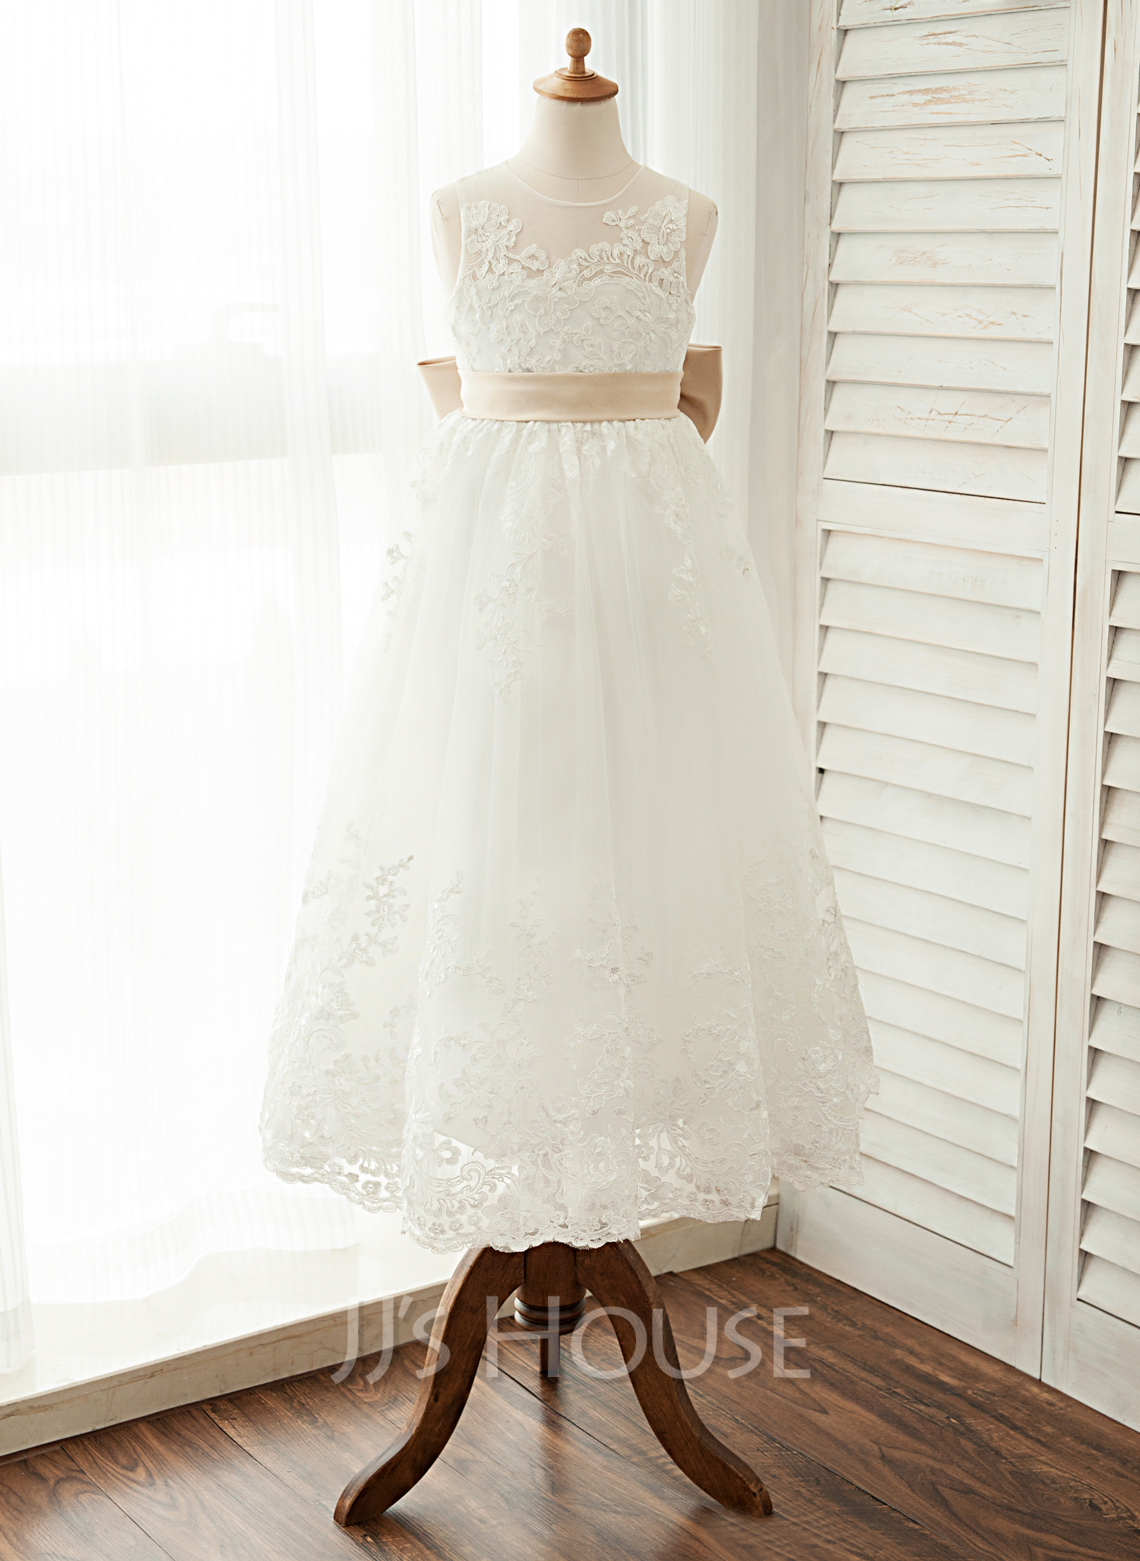 fc894fa1c A-Line/Princess Ankle-length Flower Girl Dress - Satin/Tulle/Lace Sleeveless  Scoop Neck With Sash/Bow(s) #122548